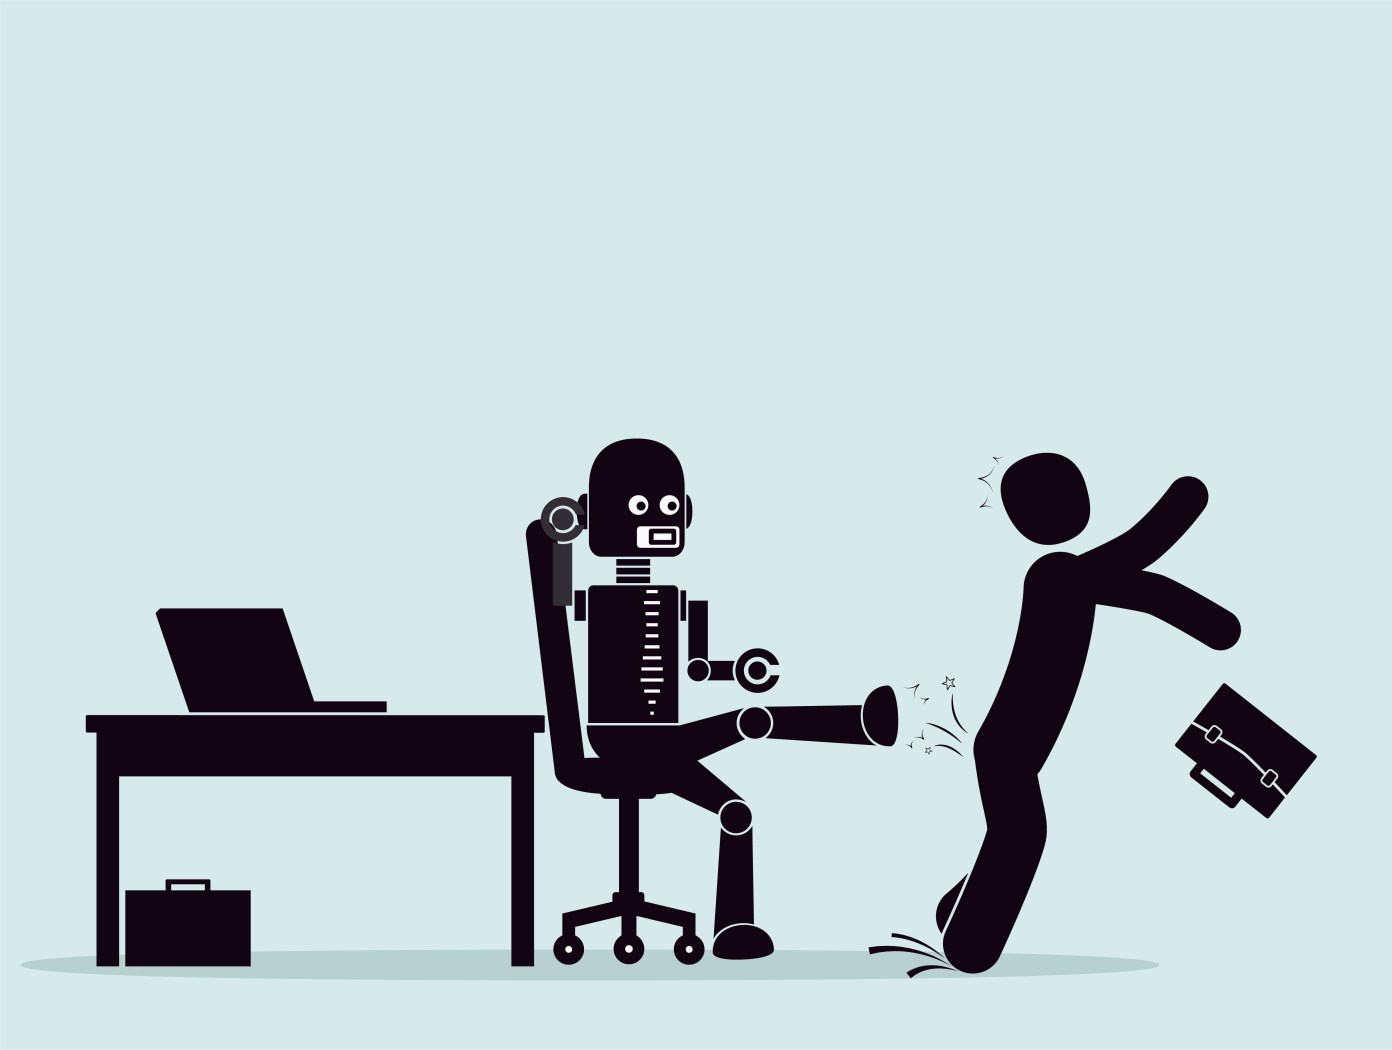 Picture of a robot sitting on an office chair, kicking a human out